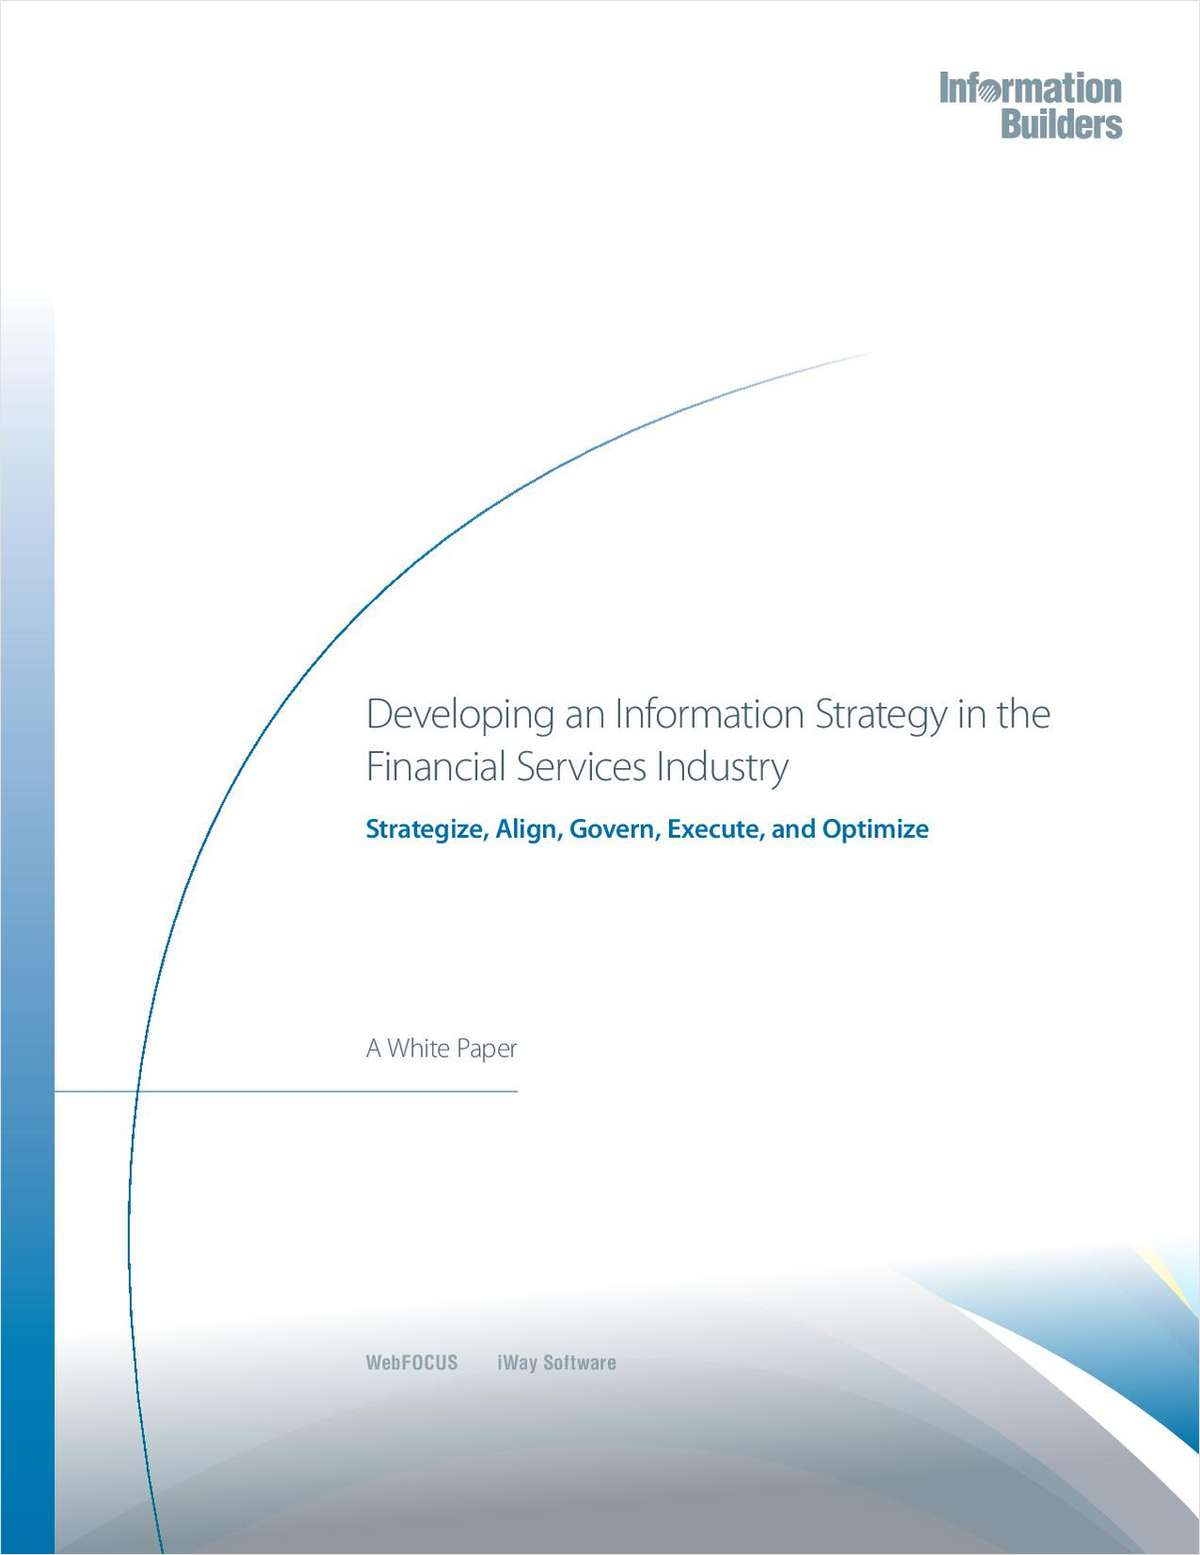 Developing an Information Strategy in the Financial Services Industry